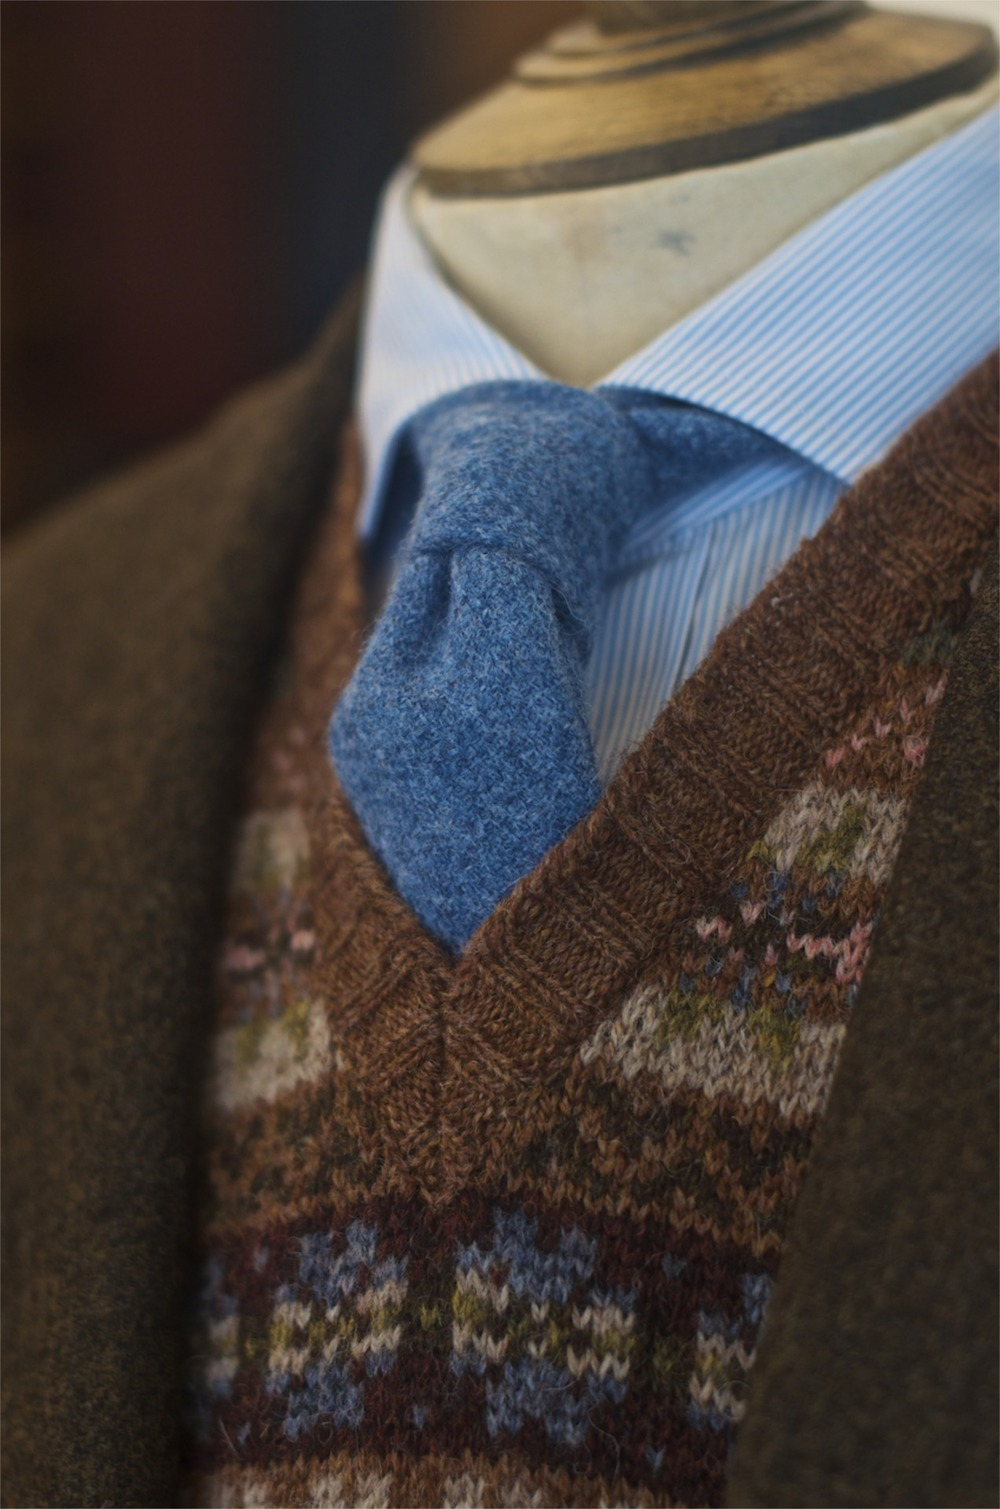 Fairisle-Sleeveless-Pullover-×-Blue-Wool-Tie-drakes.jpg